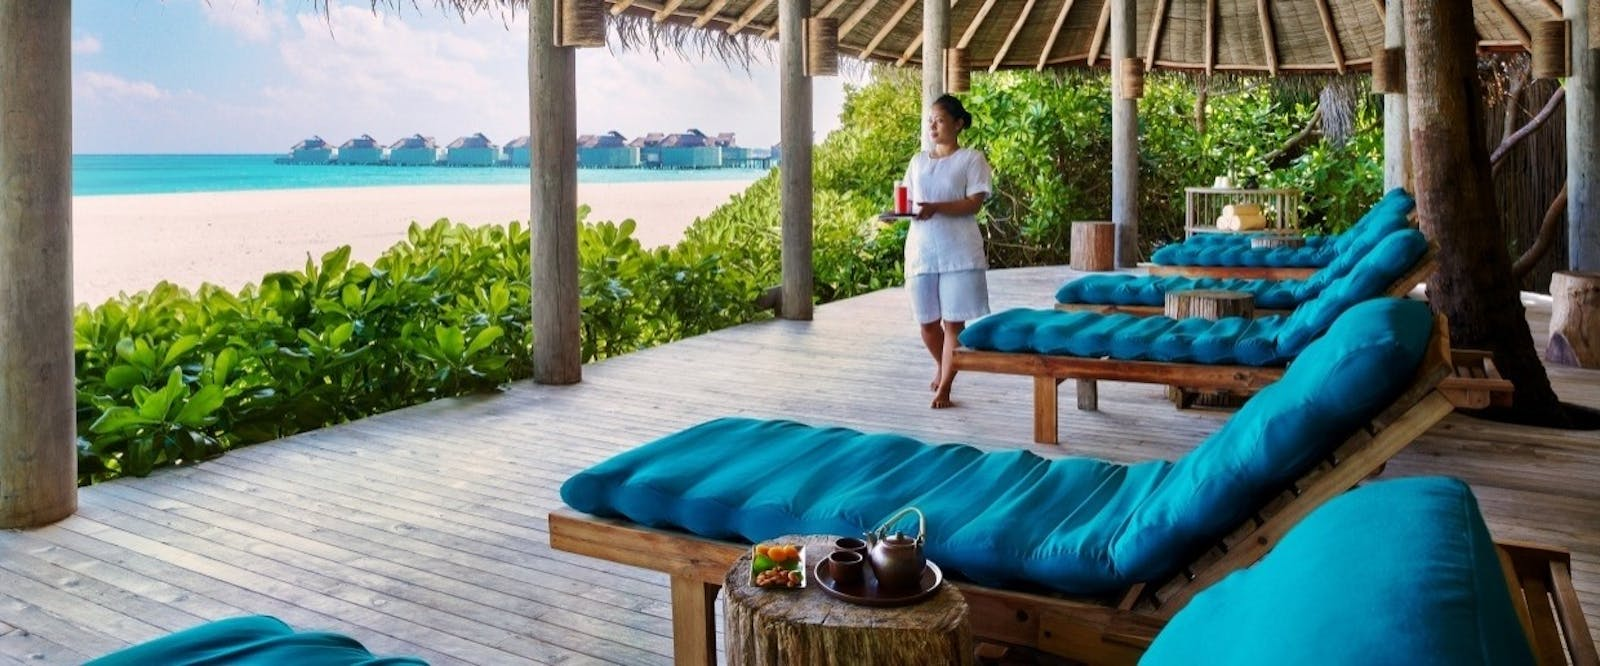 Spa Relaxation Lounge at Six Senses Laamu, Maldives, Indian Ocean